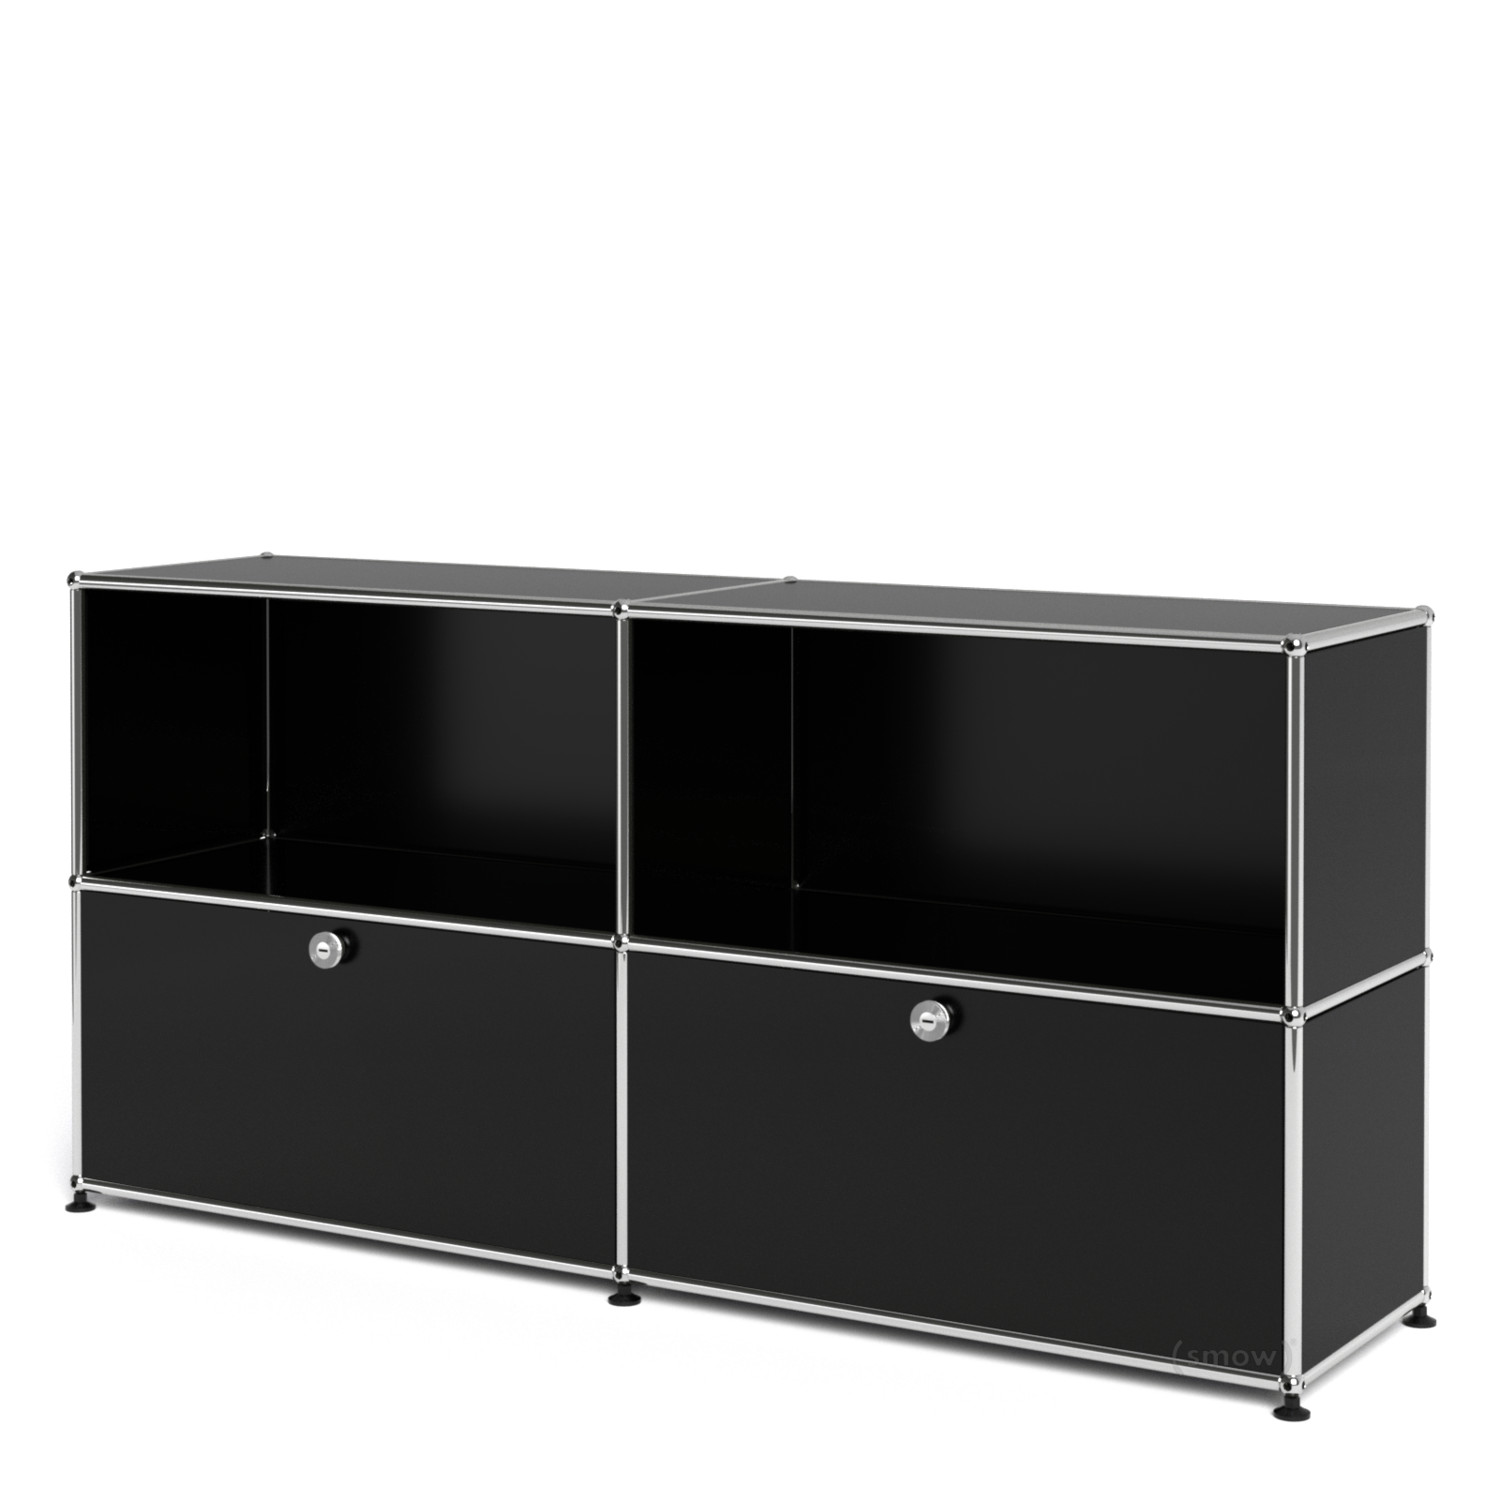 usm haller sideboard l mit 2 klappen von fritz haller. Black Bedroom Furniture Sets. Home Design Ideas